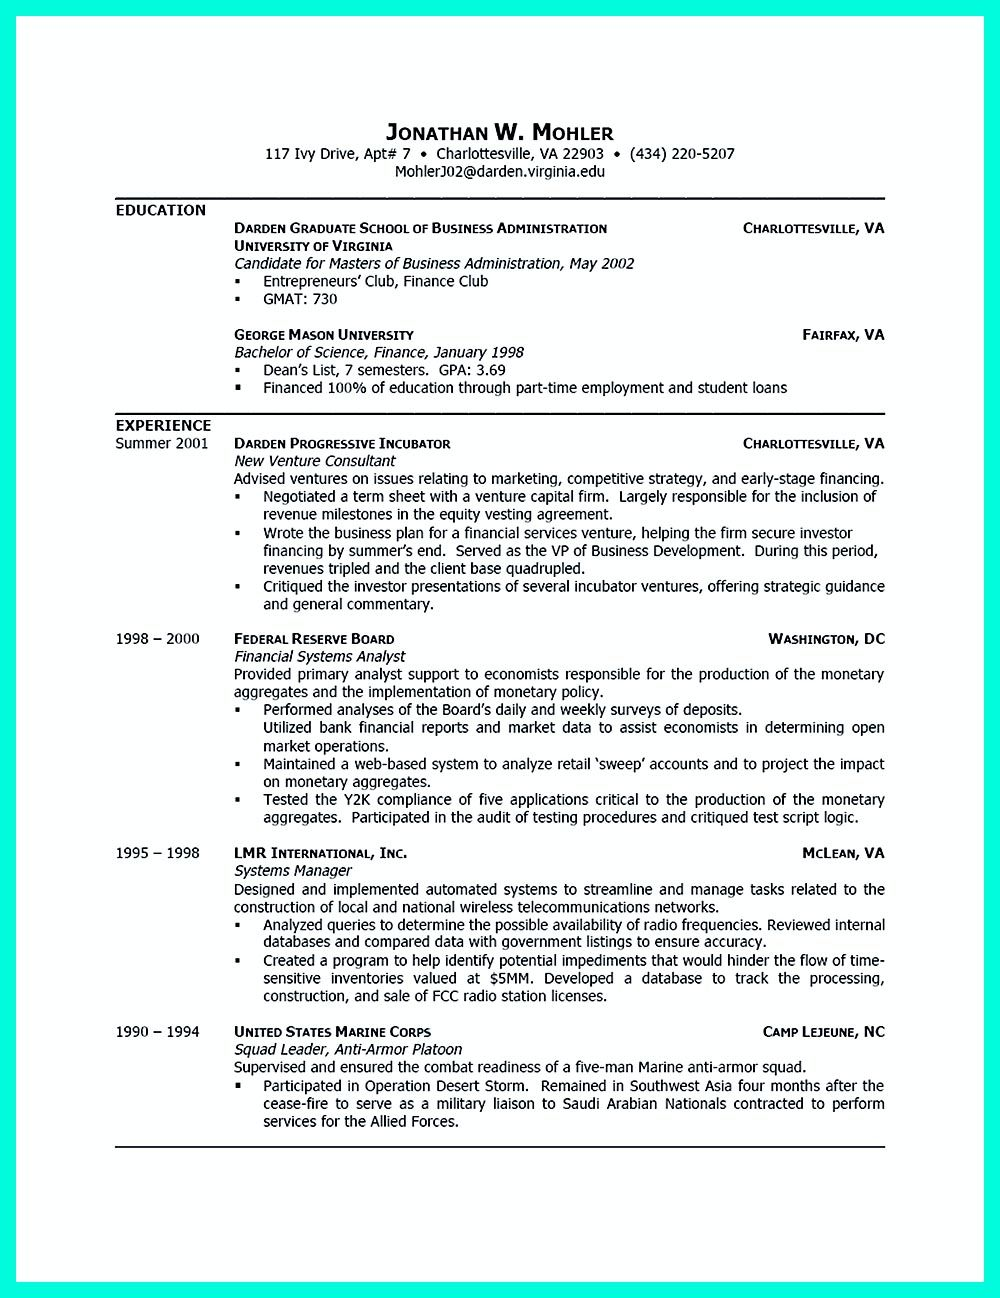 Resume For College Graduate College Resume Is Designed For College Students Either With Or